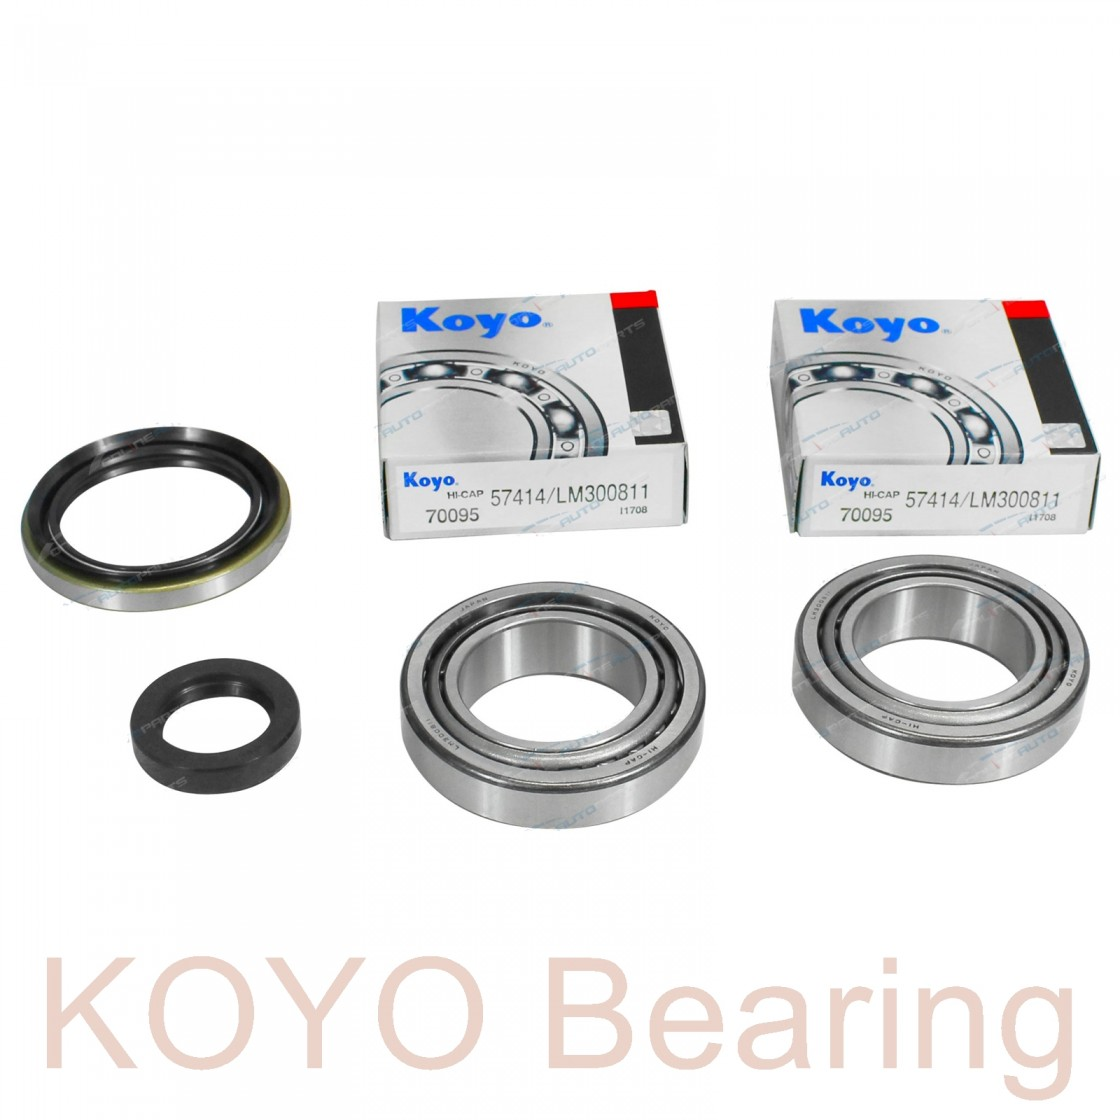 KOYO 6013NR deep groove ball bearings